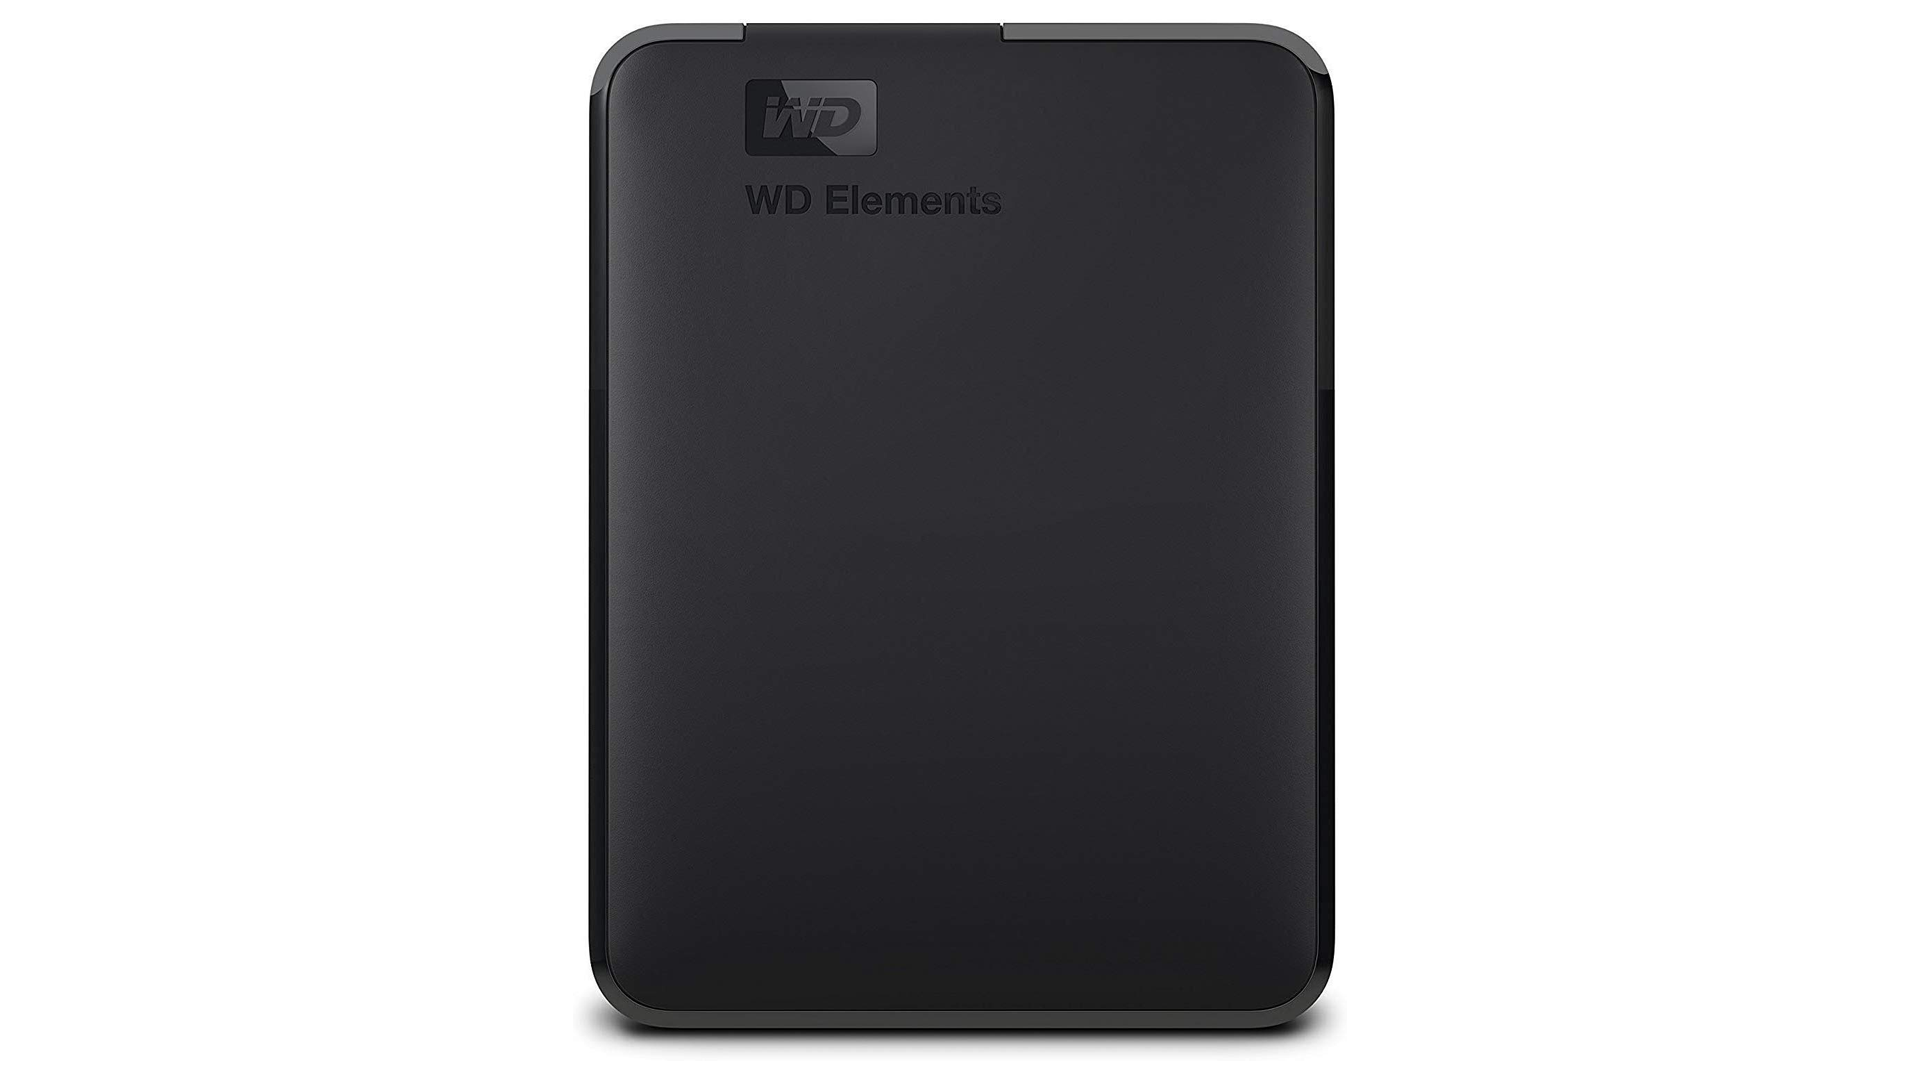 A photo of the Western Digital Express HDD.